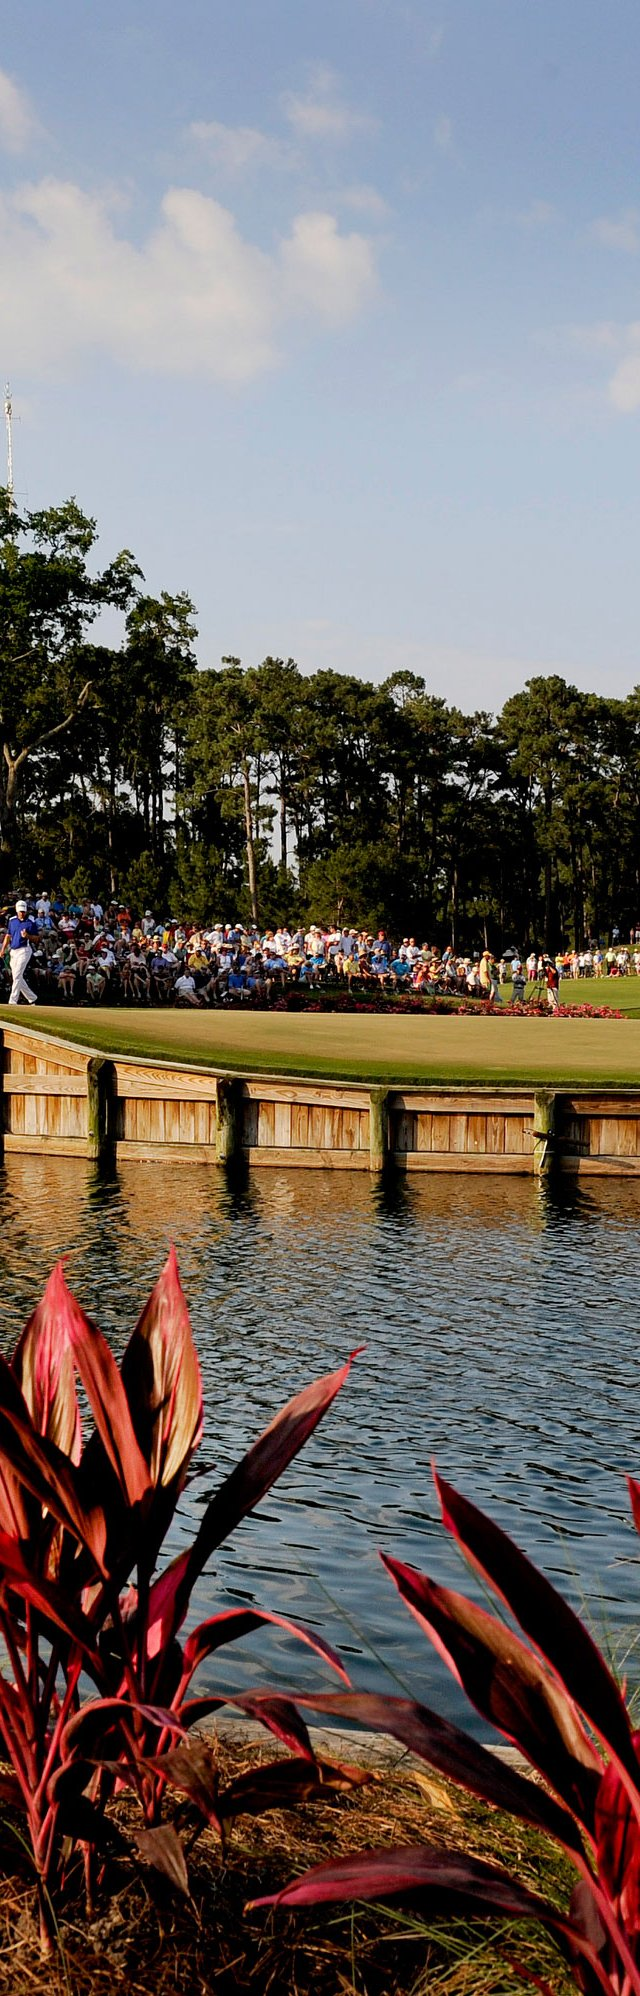 Henrik Stenson places his ball on the 17th green during the final round of THE PLAYERS Championship on THE PLAYERS Stadium Course at TPC Sawgrass.